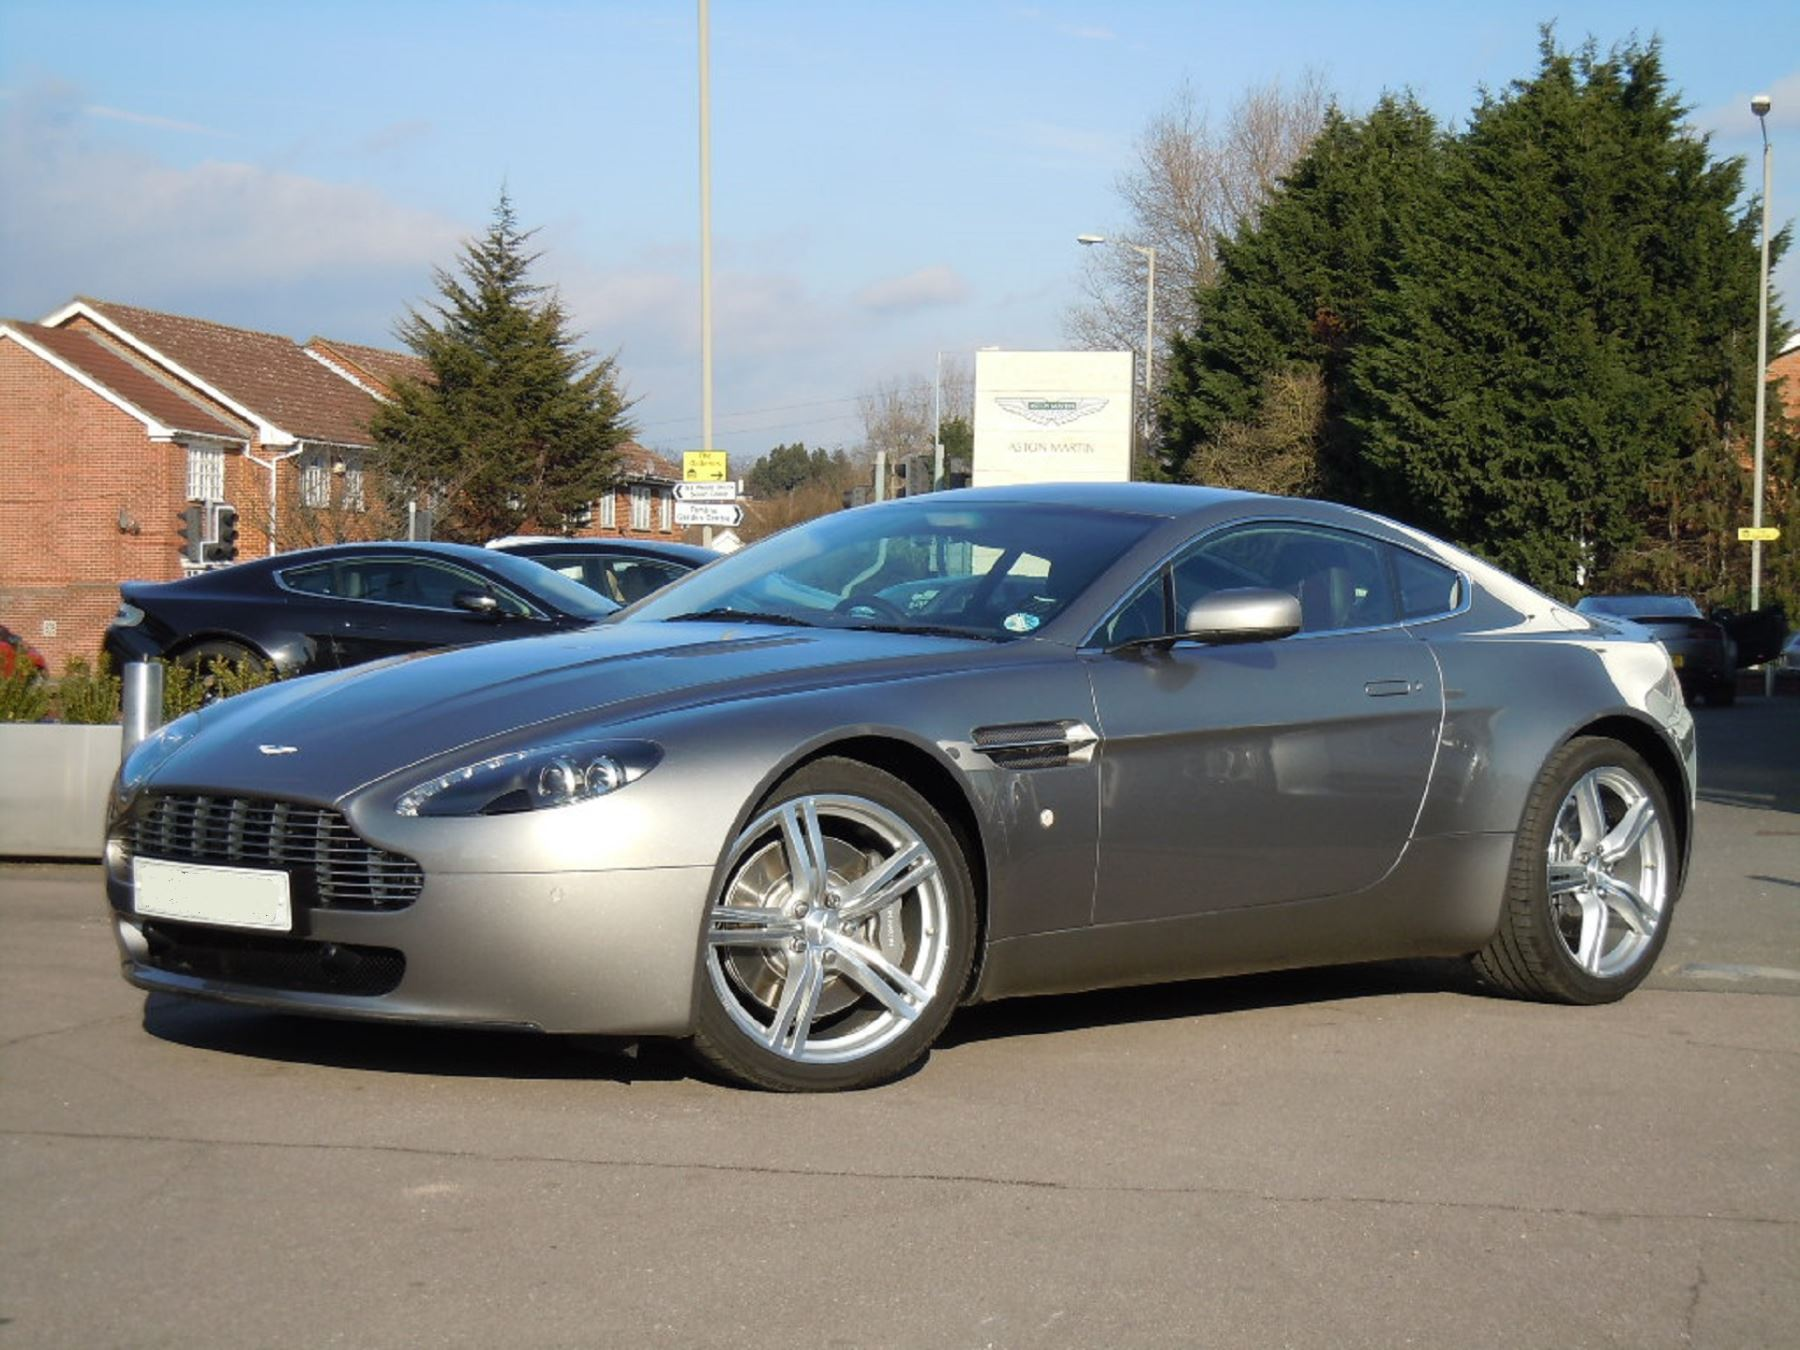 Aston Martin V8 Vantage Coupe 2dr Sportshift 4.3 Automatic Coupe (2009) image